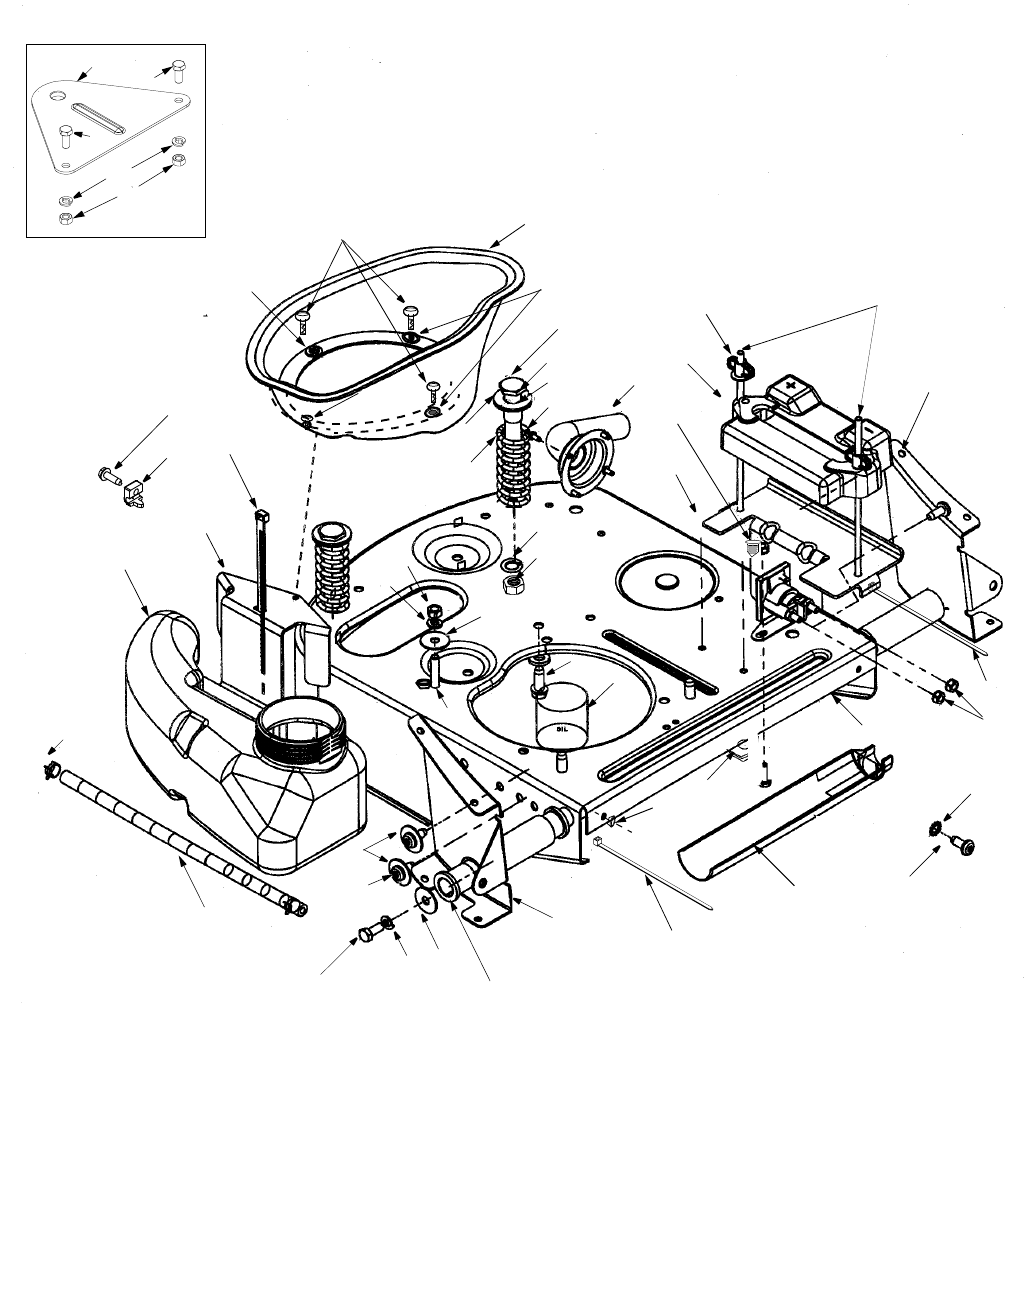 Page 31 of Yard-Man Lawn Mower 13B-325-401 User Guide